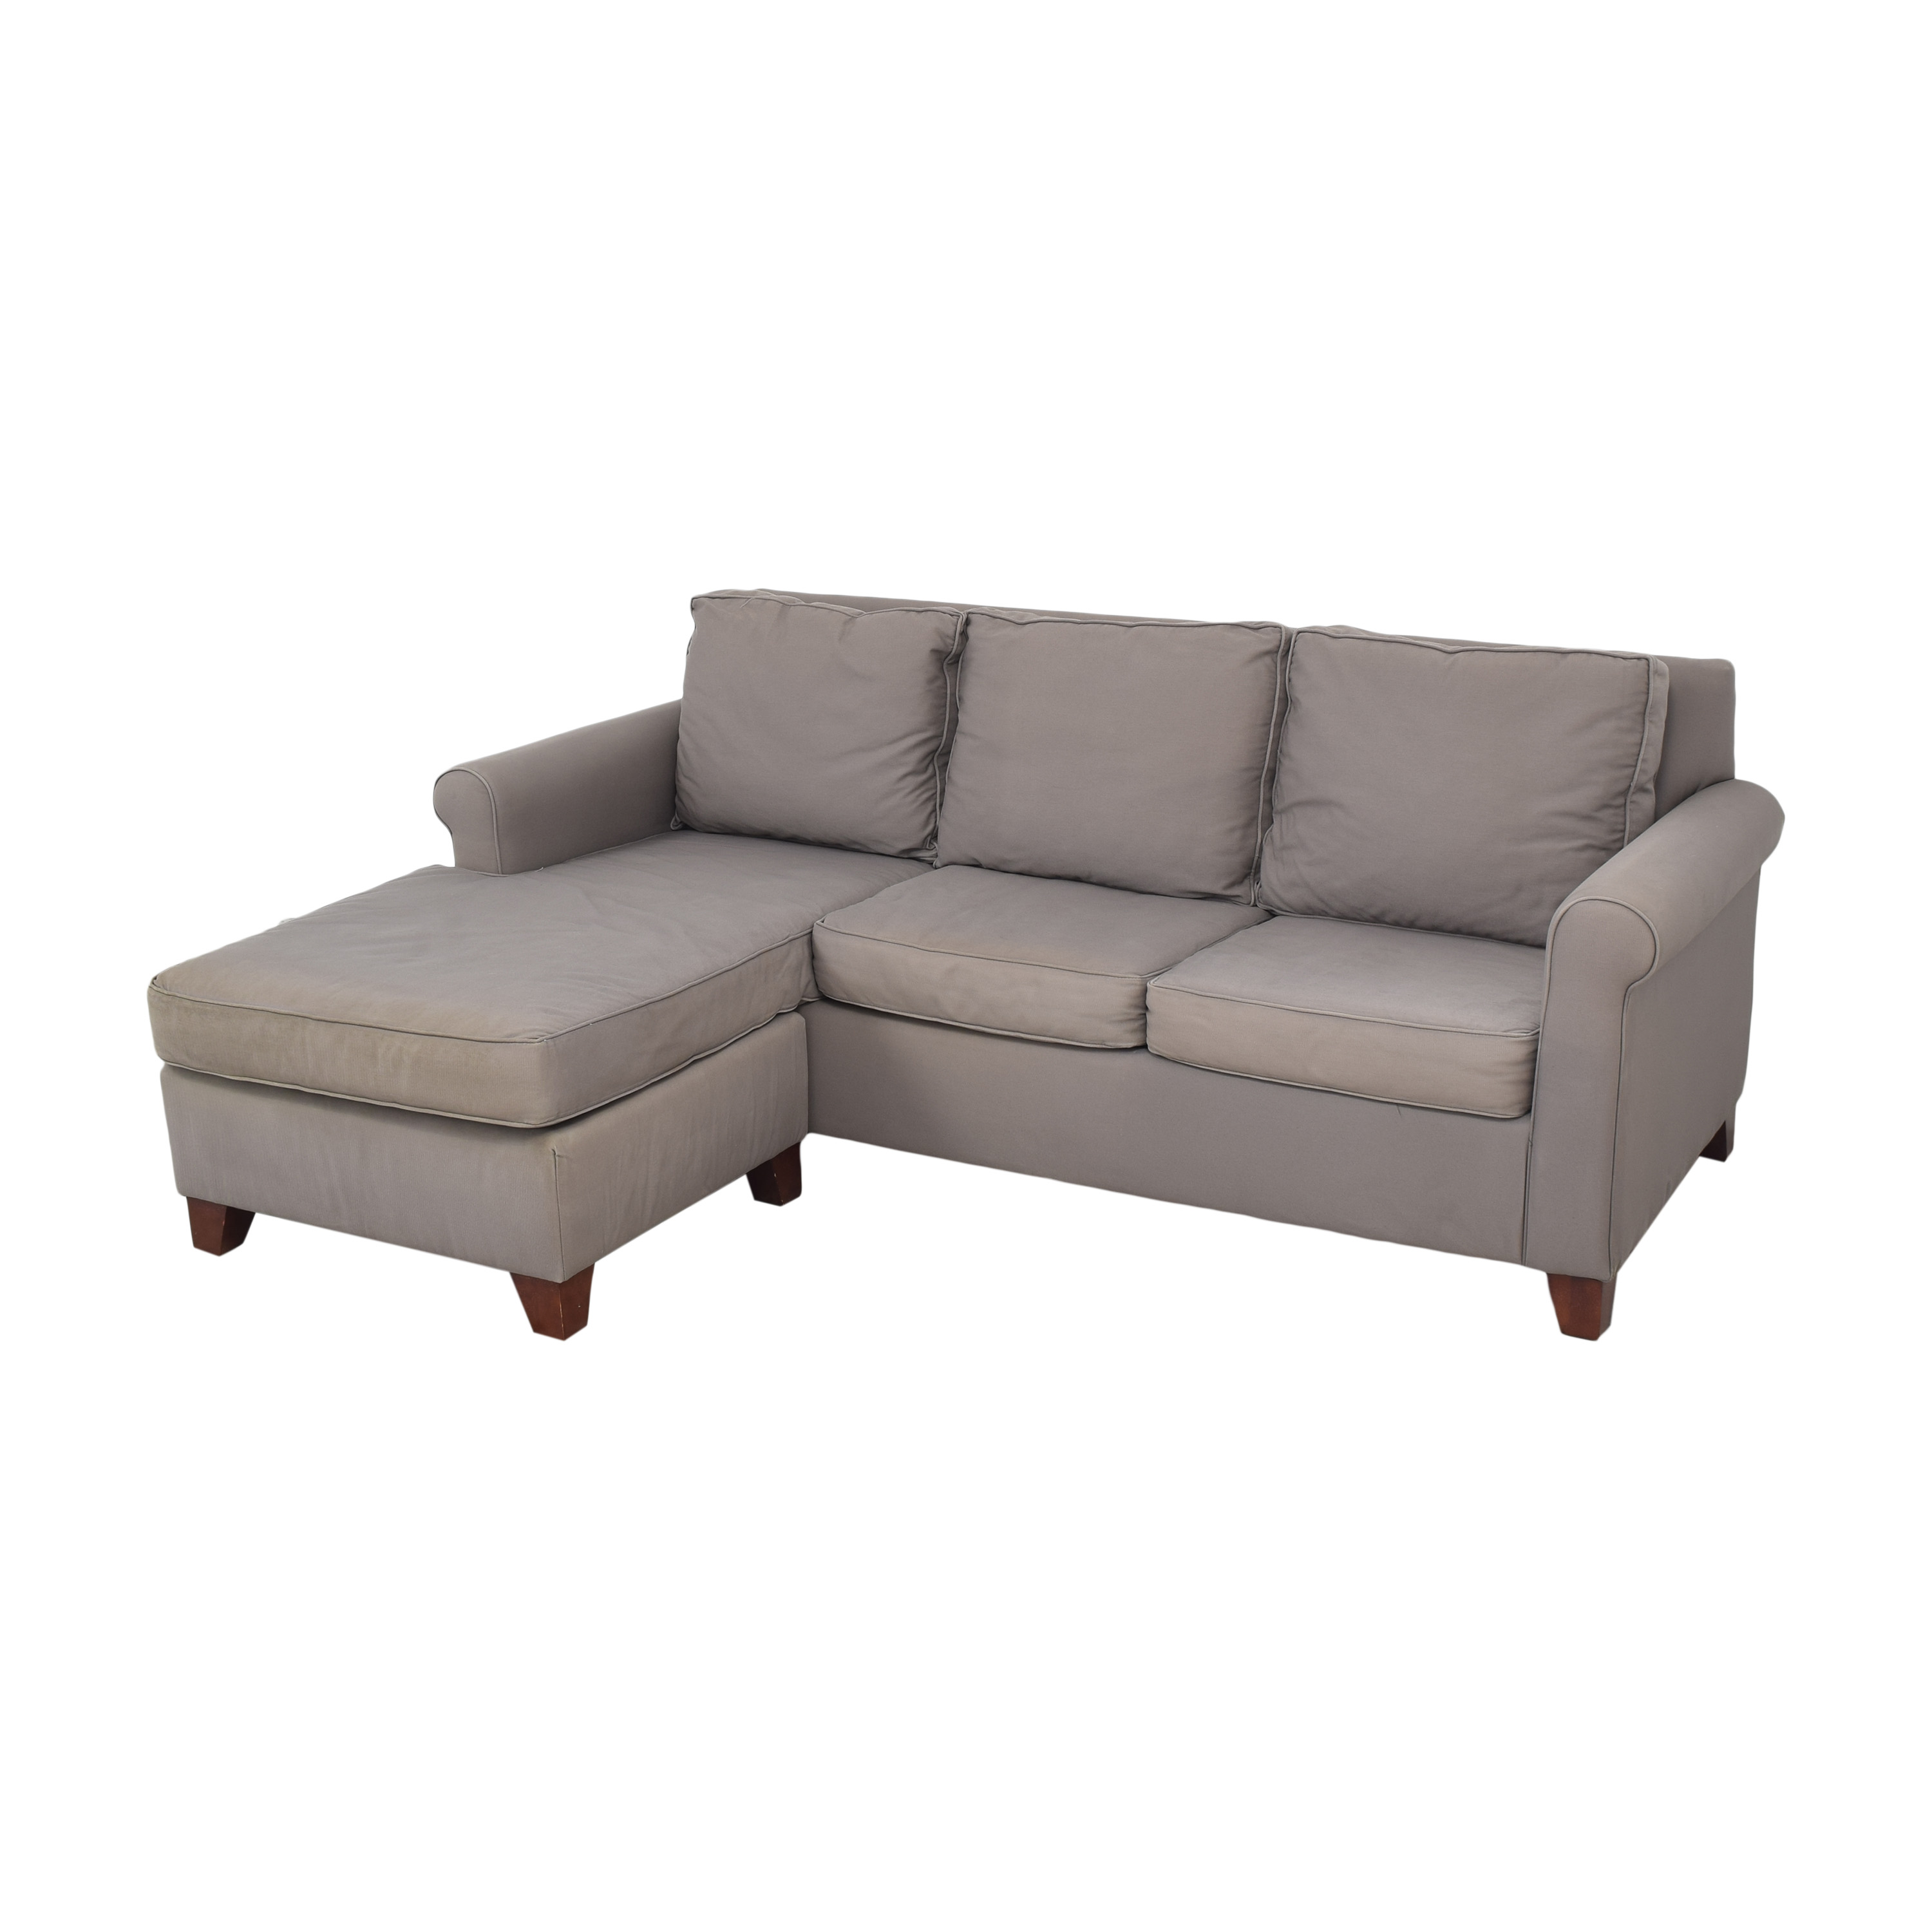 Pottery Barn Pottery Barn Cameron Sectional Sofa with Reversible Chaise used